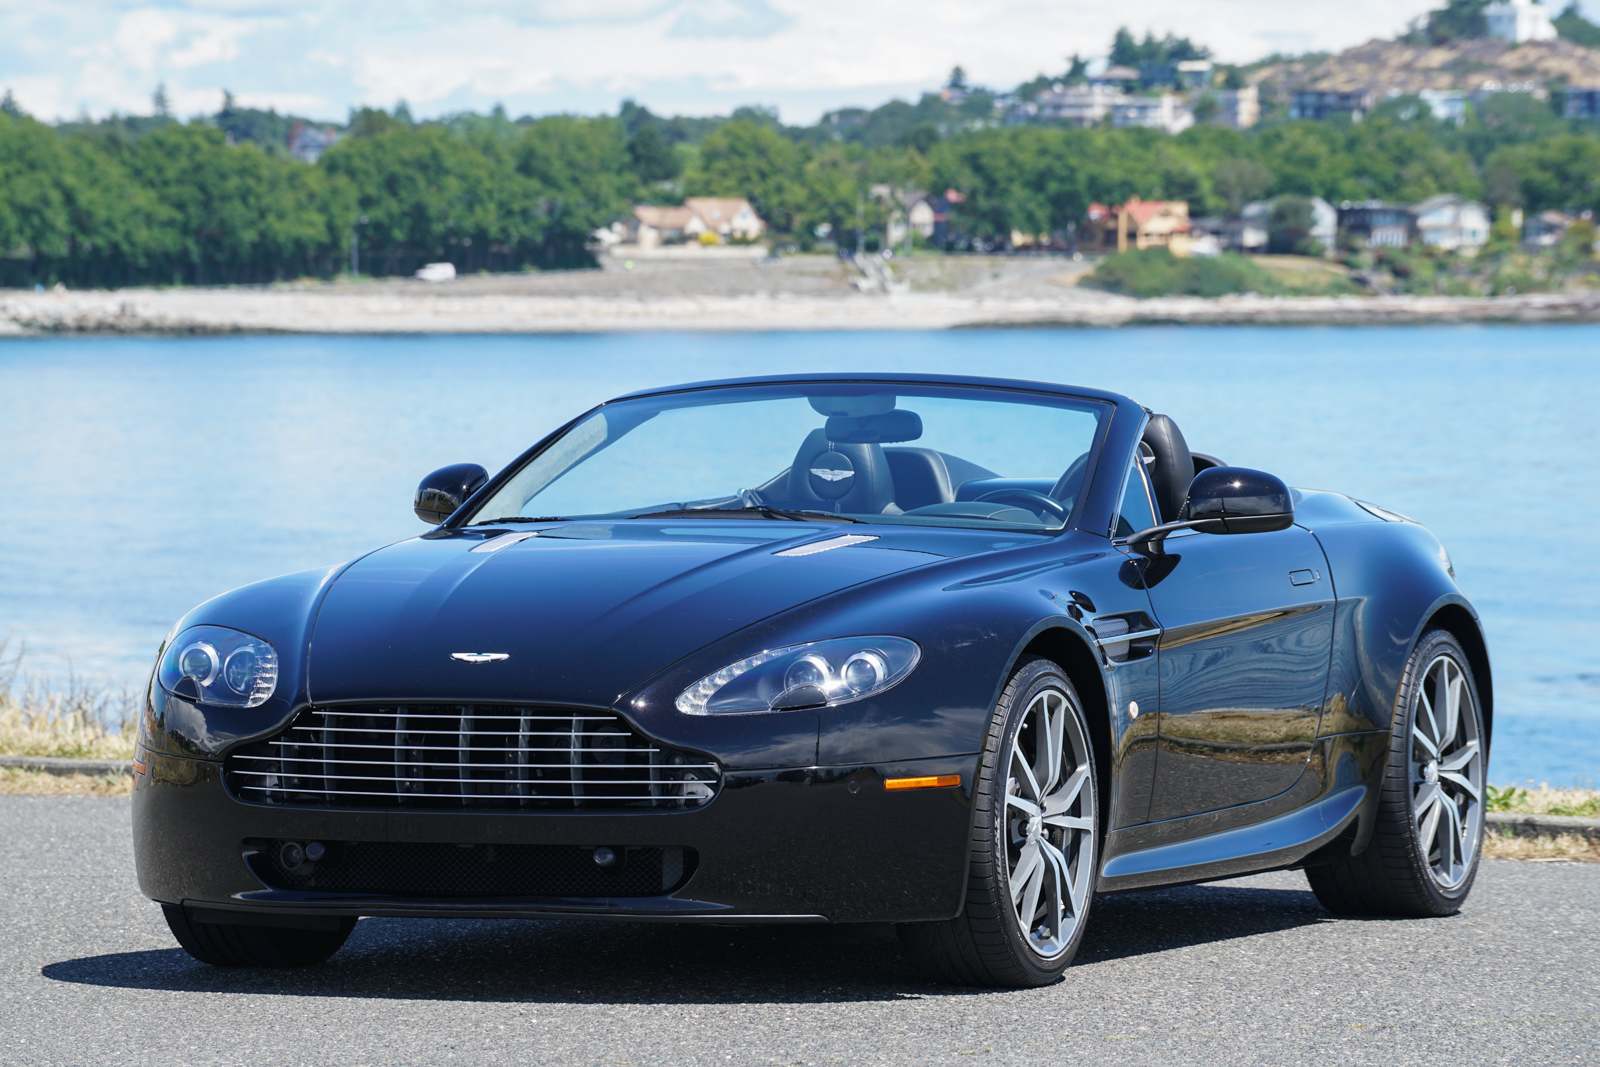 2010 Aston Martin V8 Vantage Roadster for sale